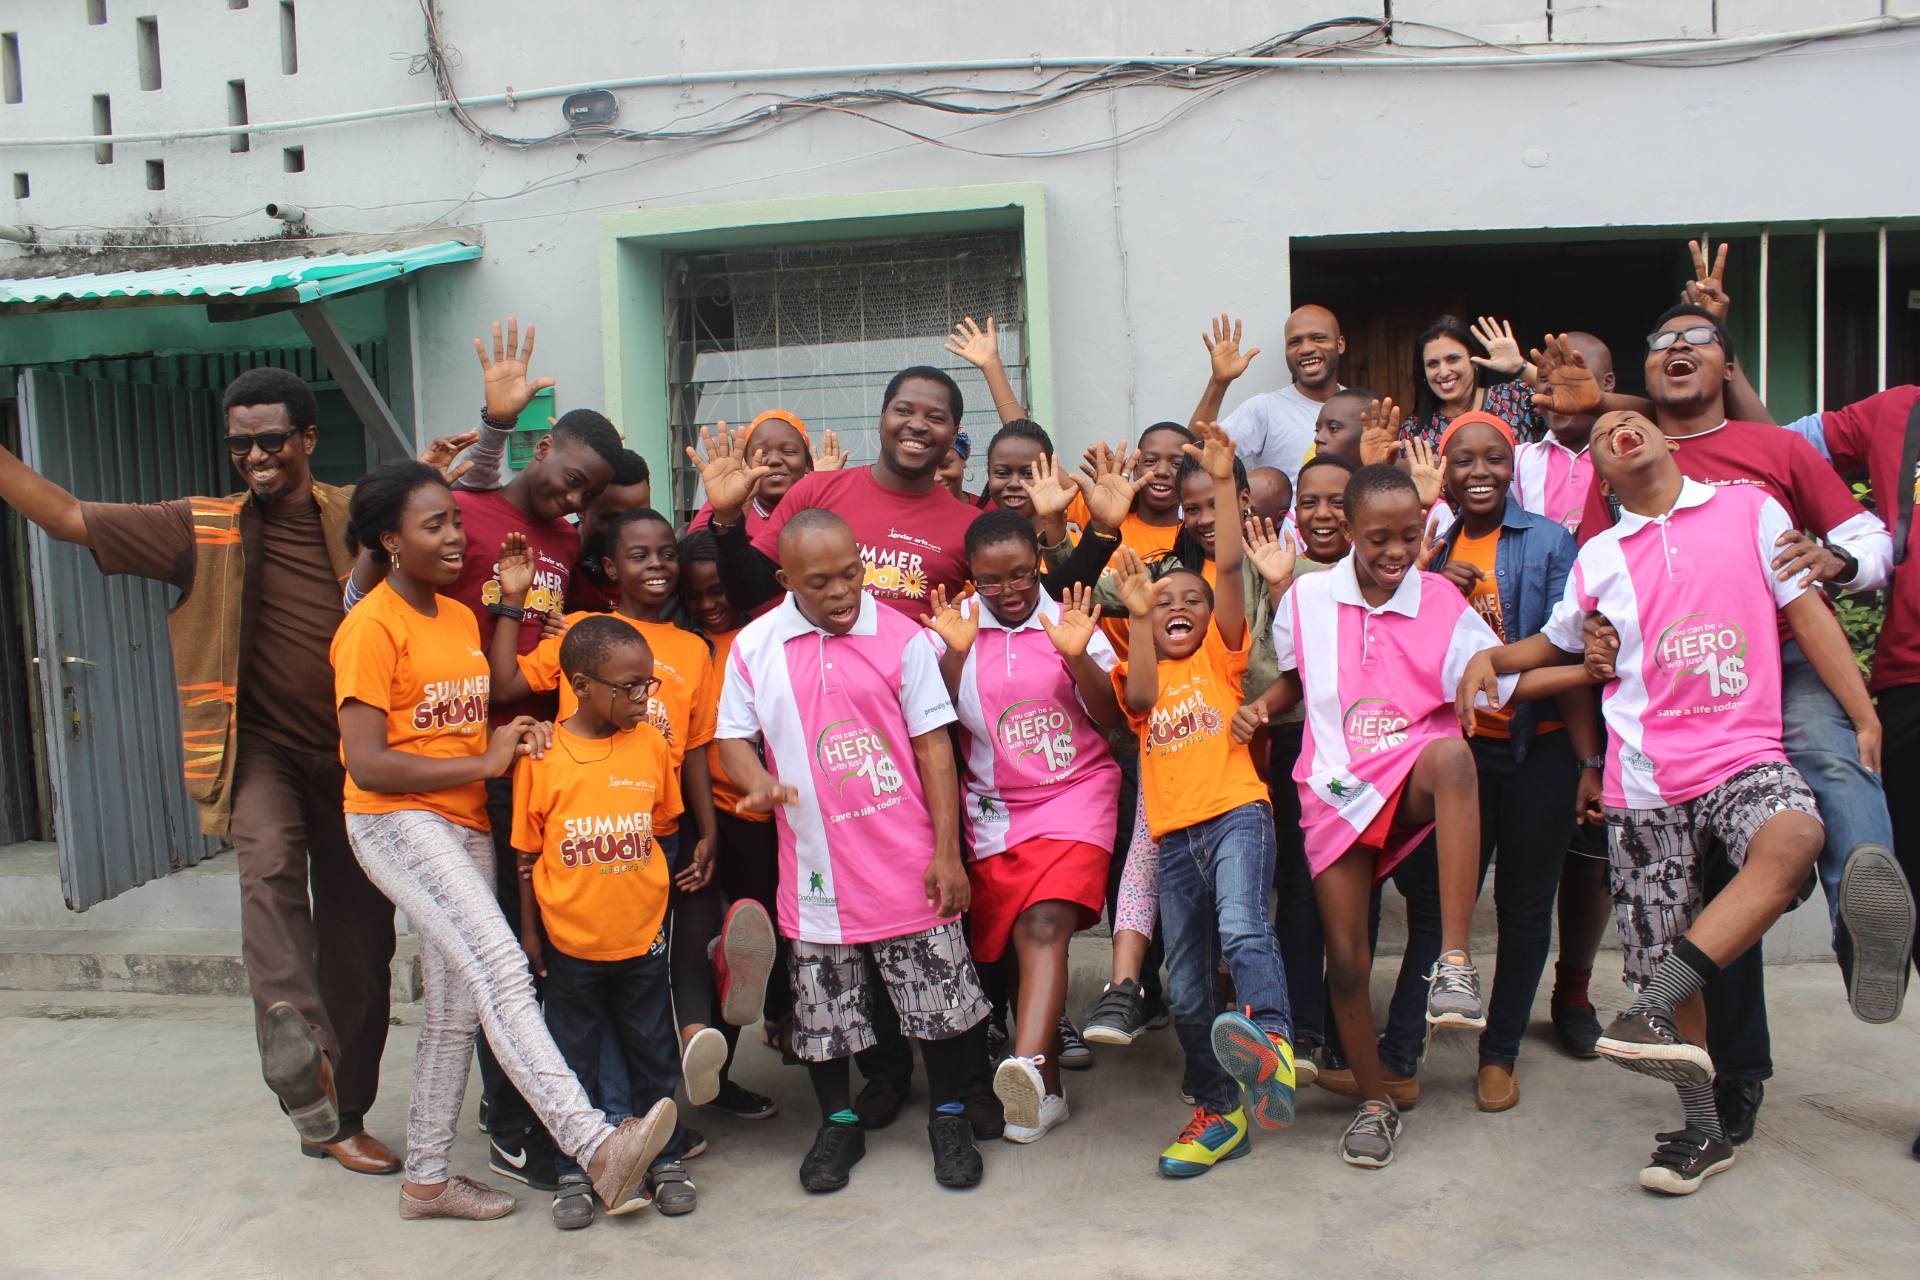 Summer Studio and Down Syndrome Foundation Nigeria